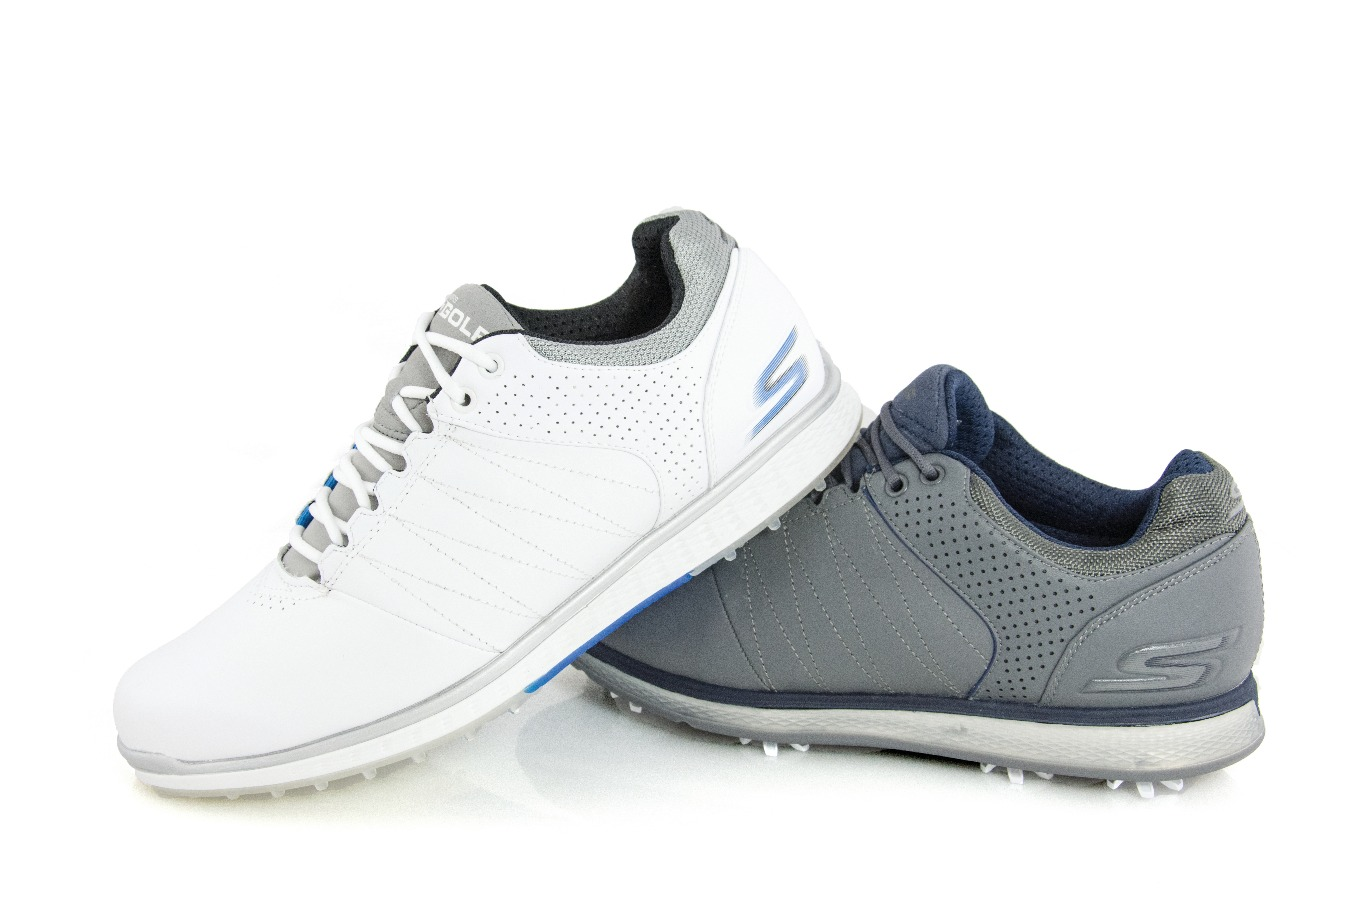 Skechers Golf Shoes Ireland